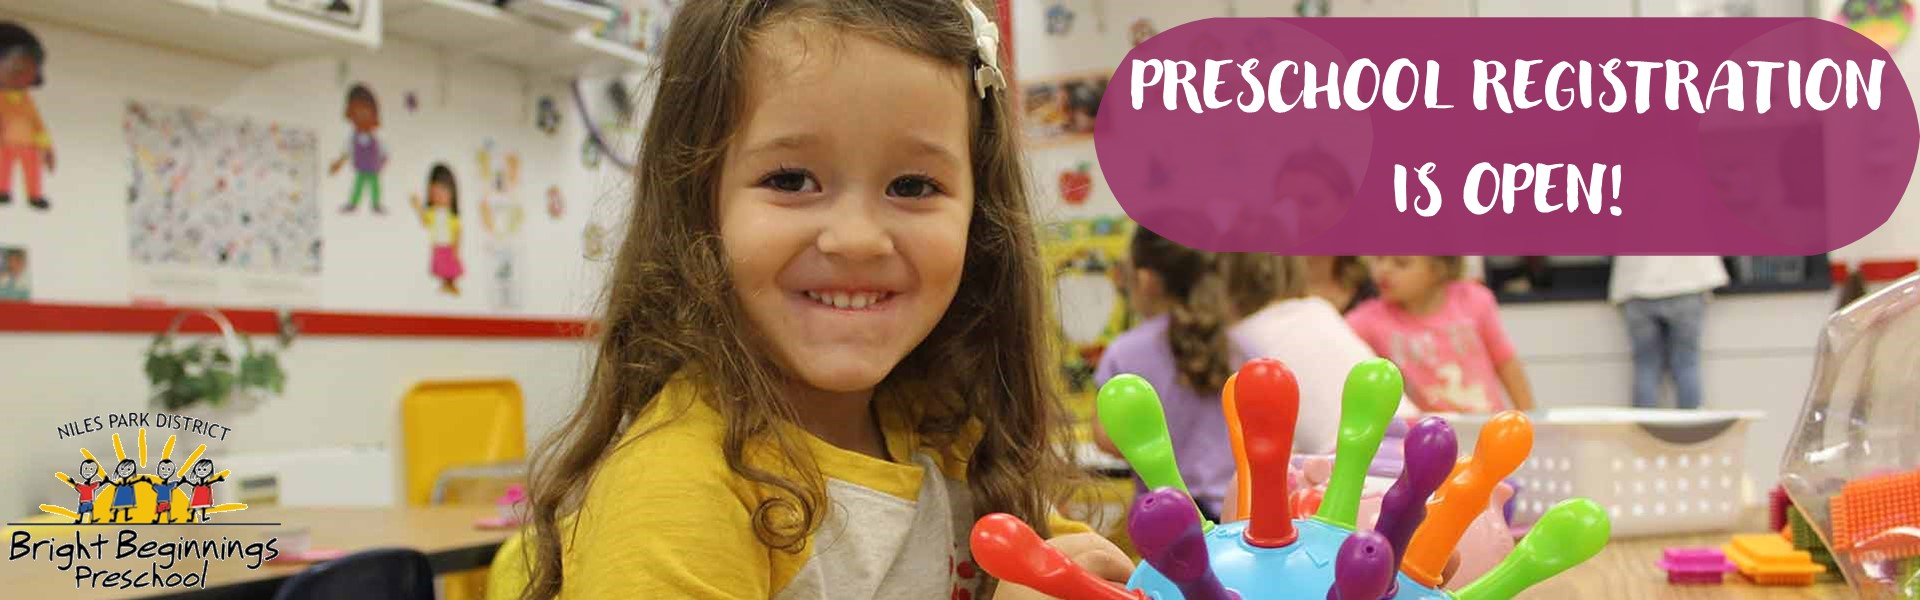 Bright Beginnings Preschool Registration